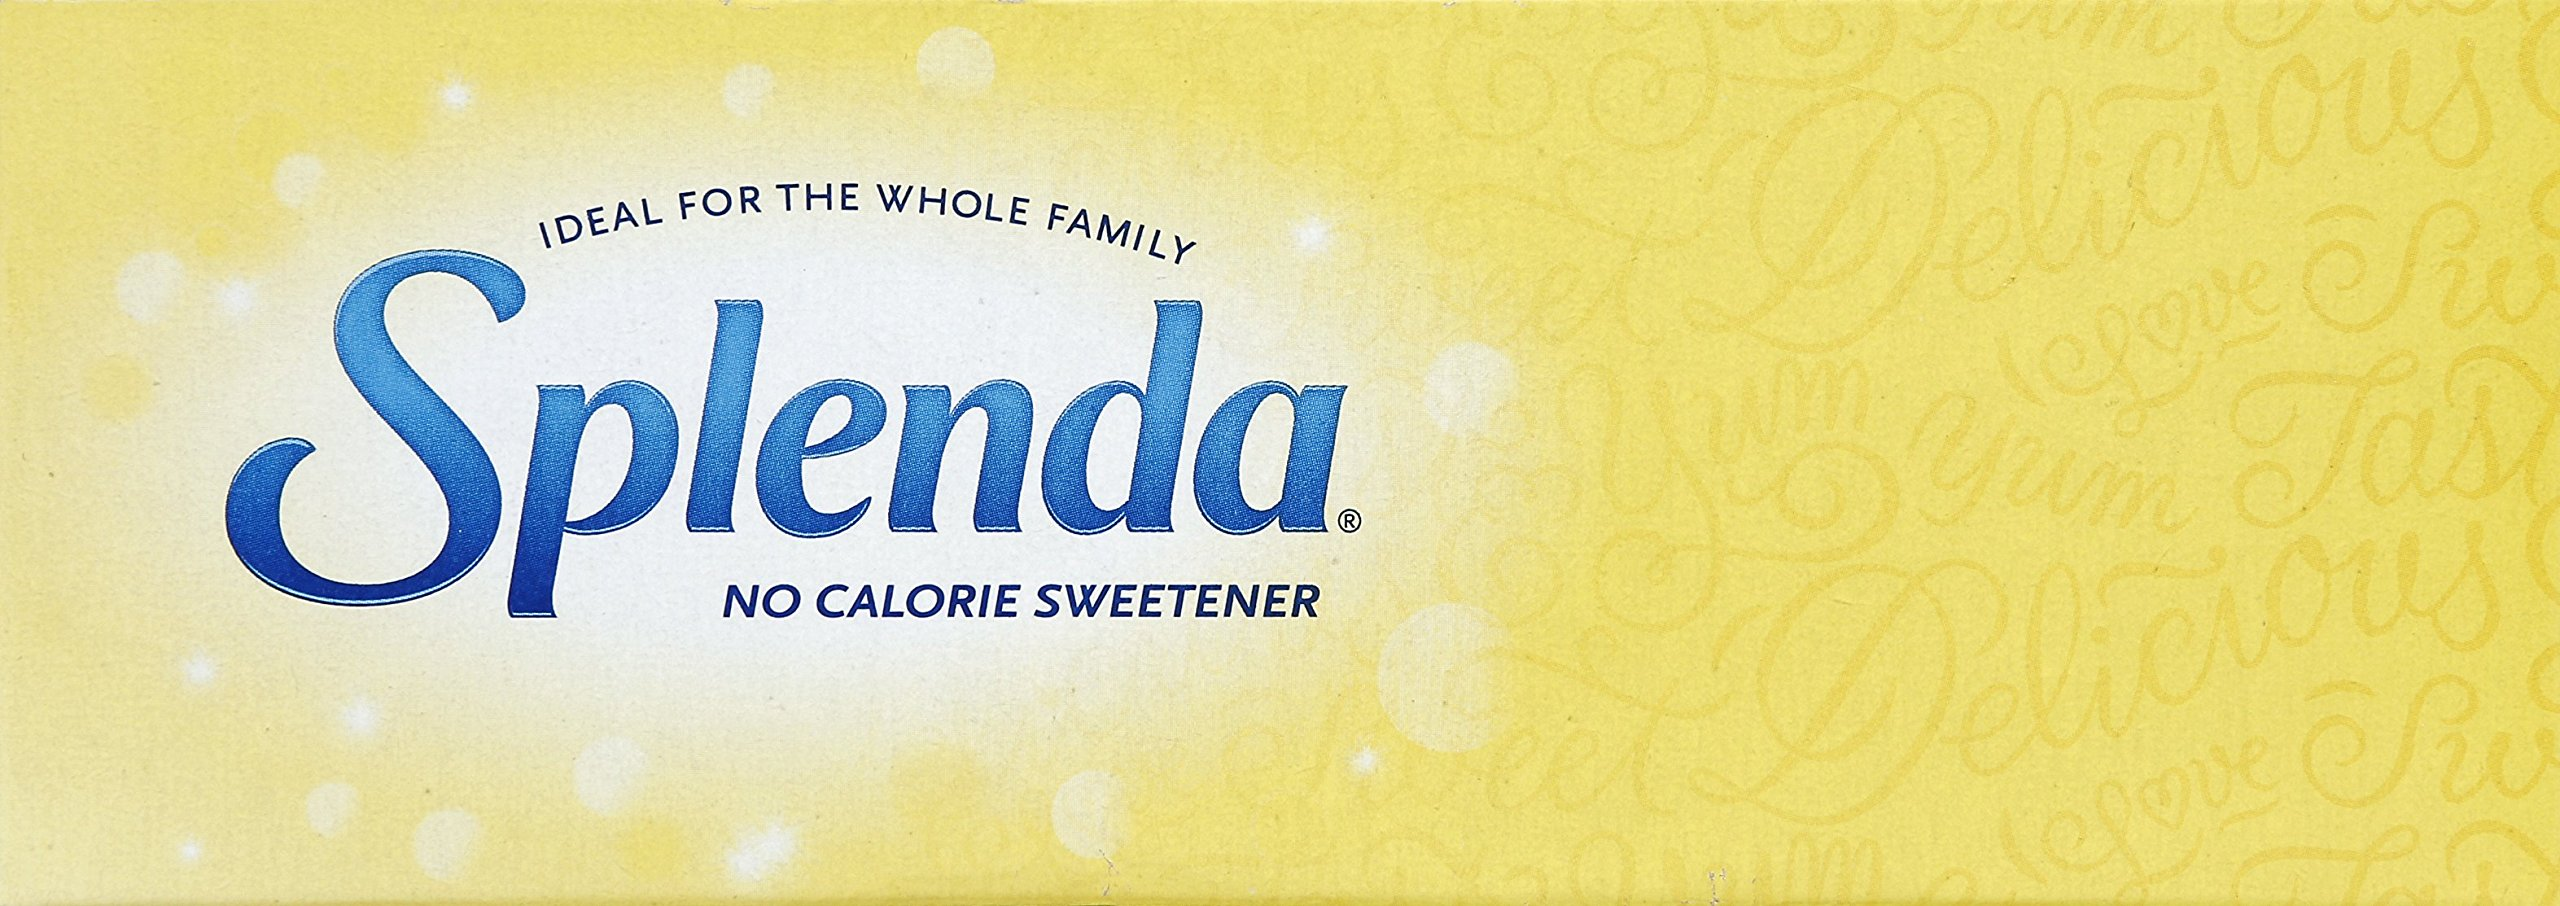 Splenda--No Calorie Sweetener--200 Count Packets, 14.1 Ounce--Sugar Substitute for Use with Coffee, Tea, Fruit, Cereal, and More by Splenda (Image #3)